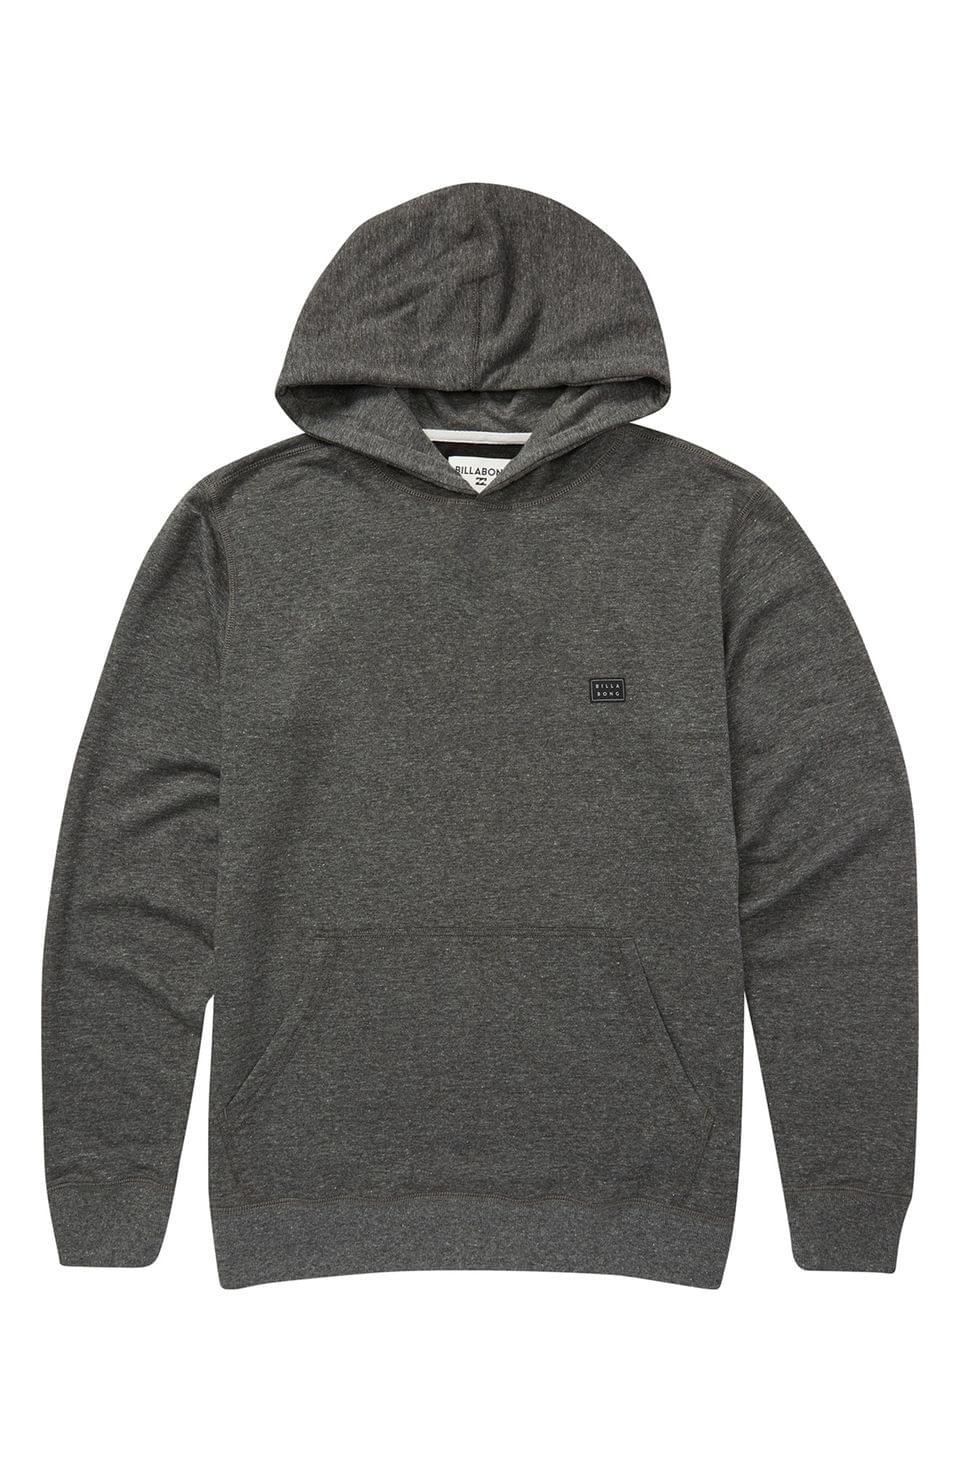 Boy's Billabong All Day Pullover Hoodie (Big Boys)